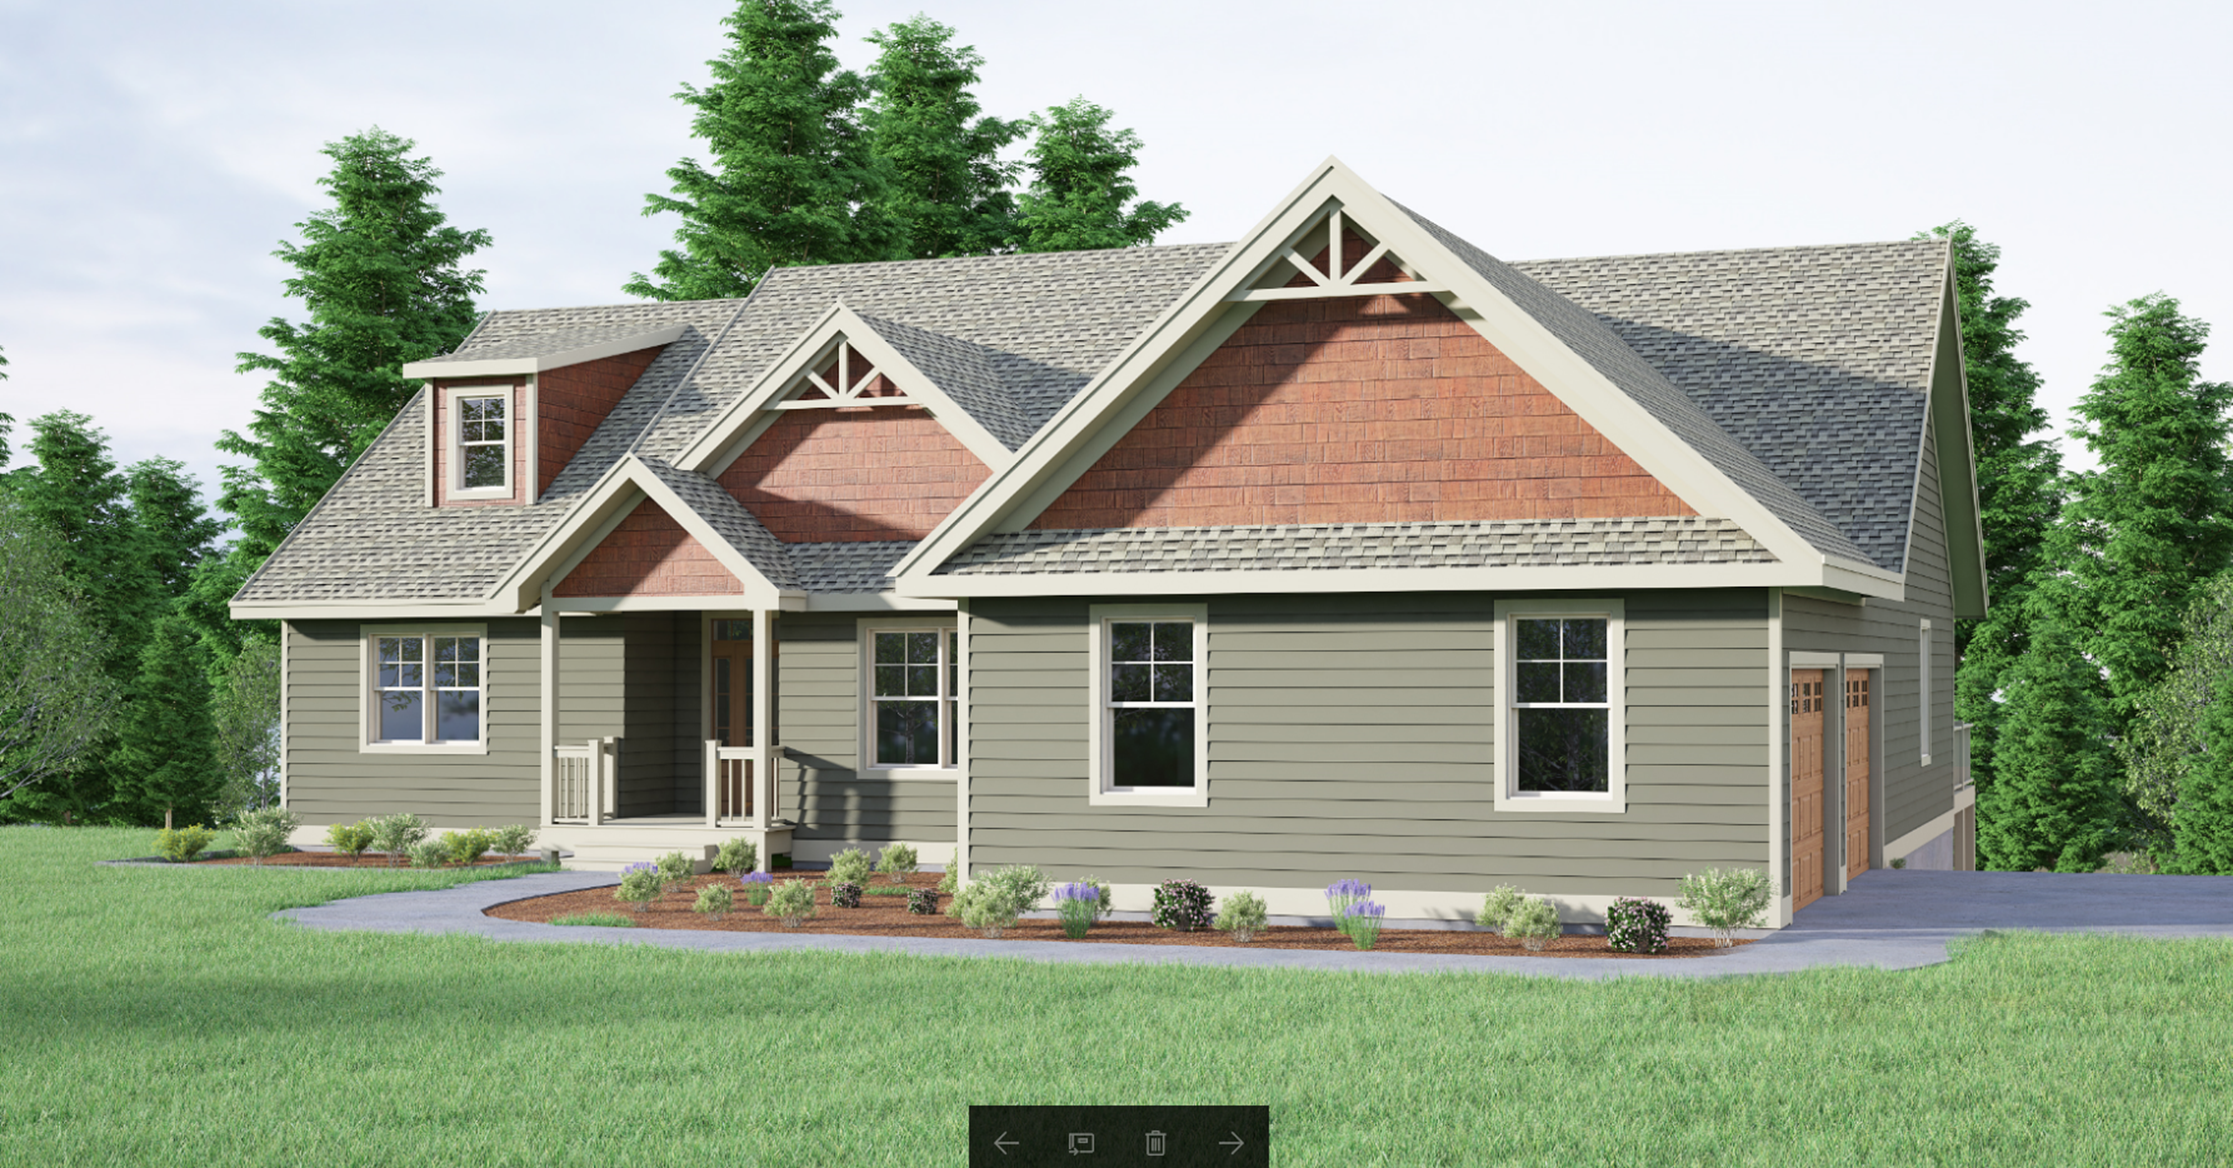 Brown Haven Homes - IvyLog Virtual Tour